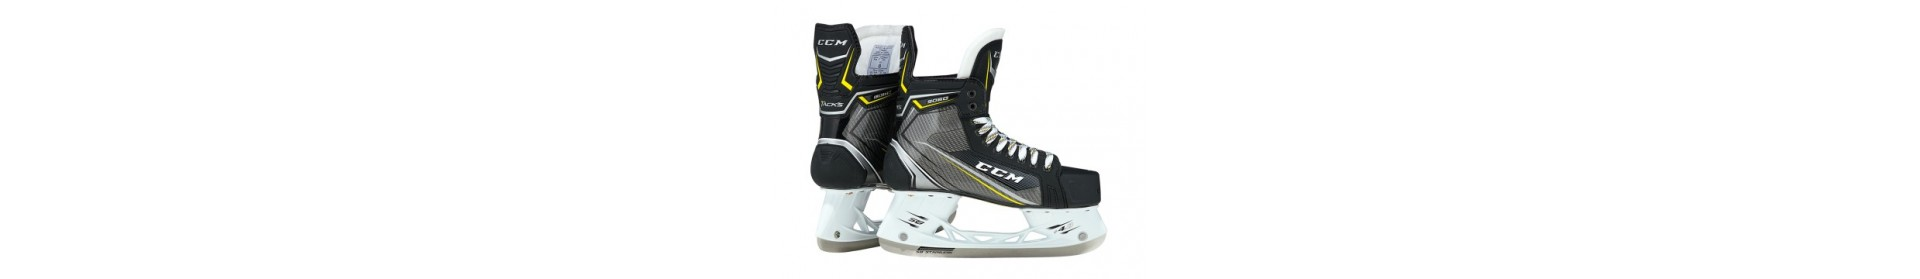 Patins Hockey - Le Vestiaire